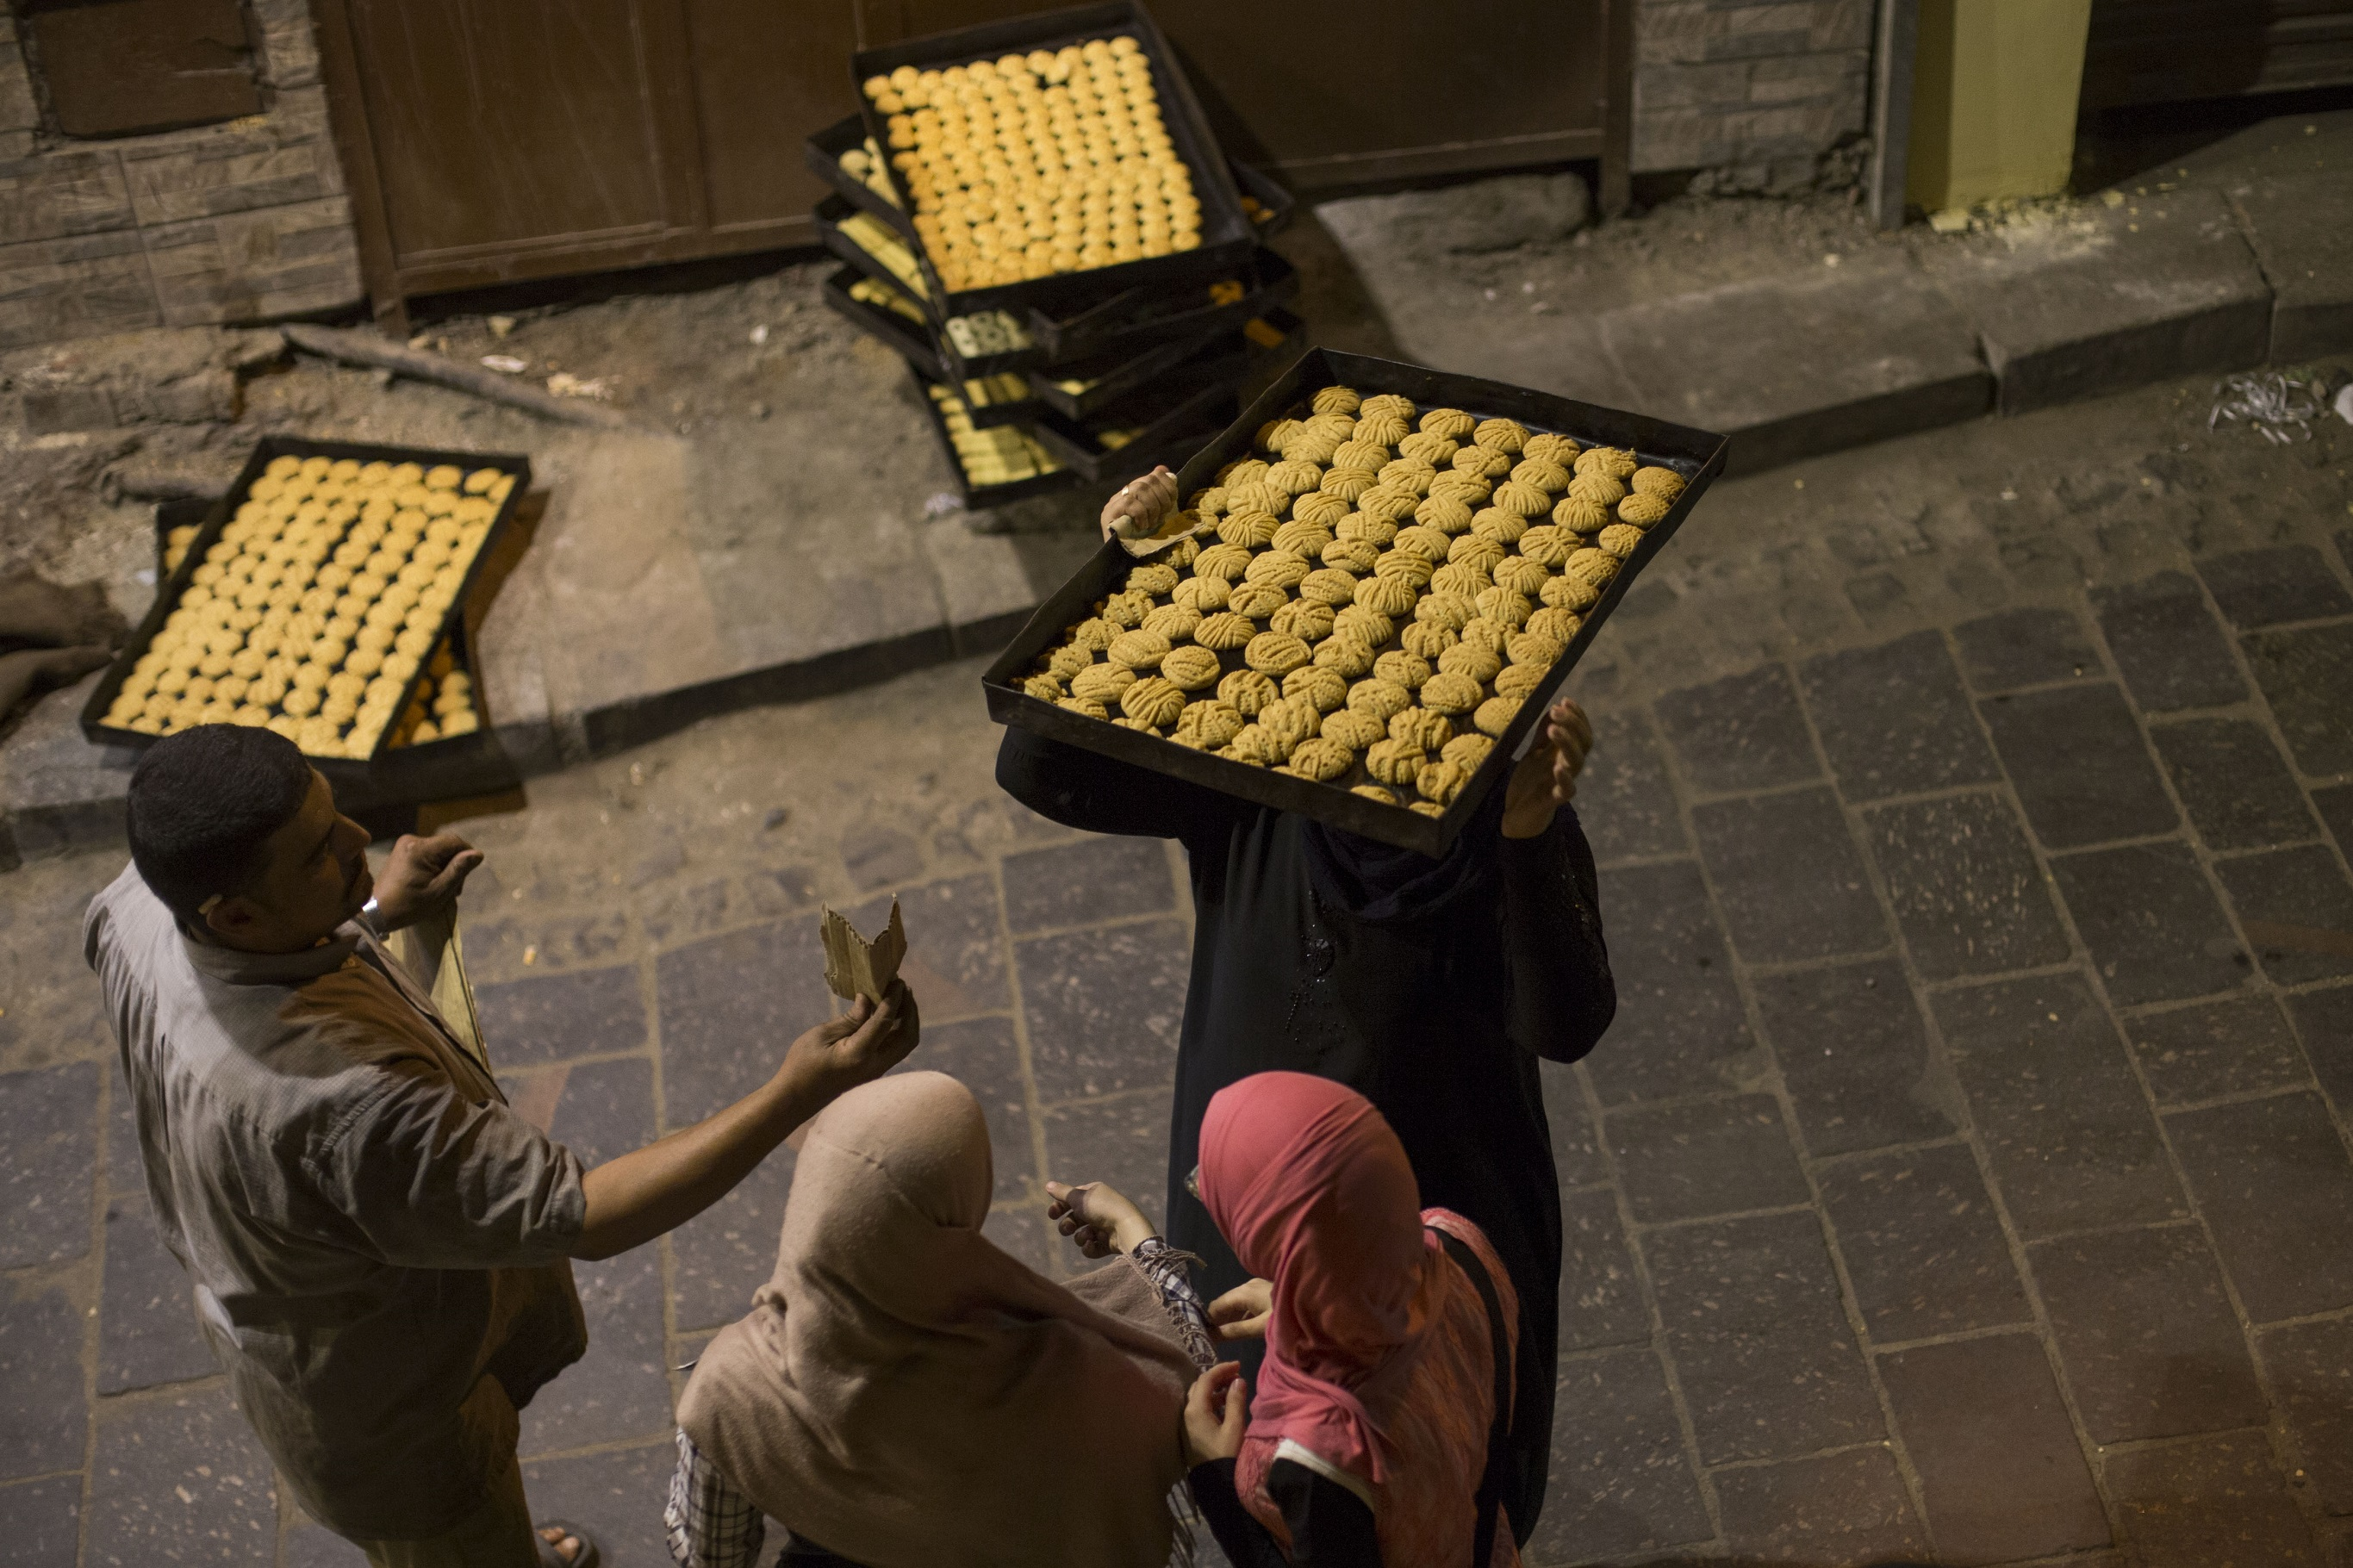 Nowadays, many Egyptian families prefer to buy ready-made kahk rather than making it at home By Osama Al Sayed